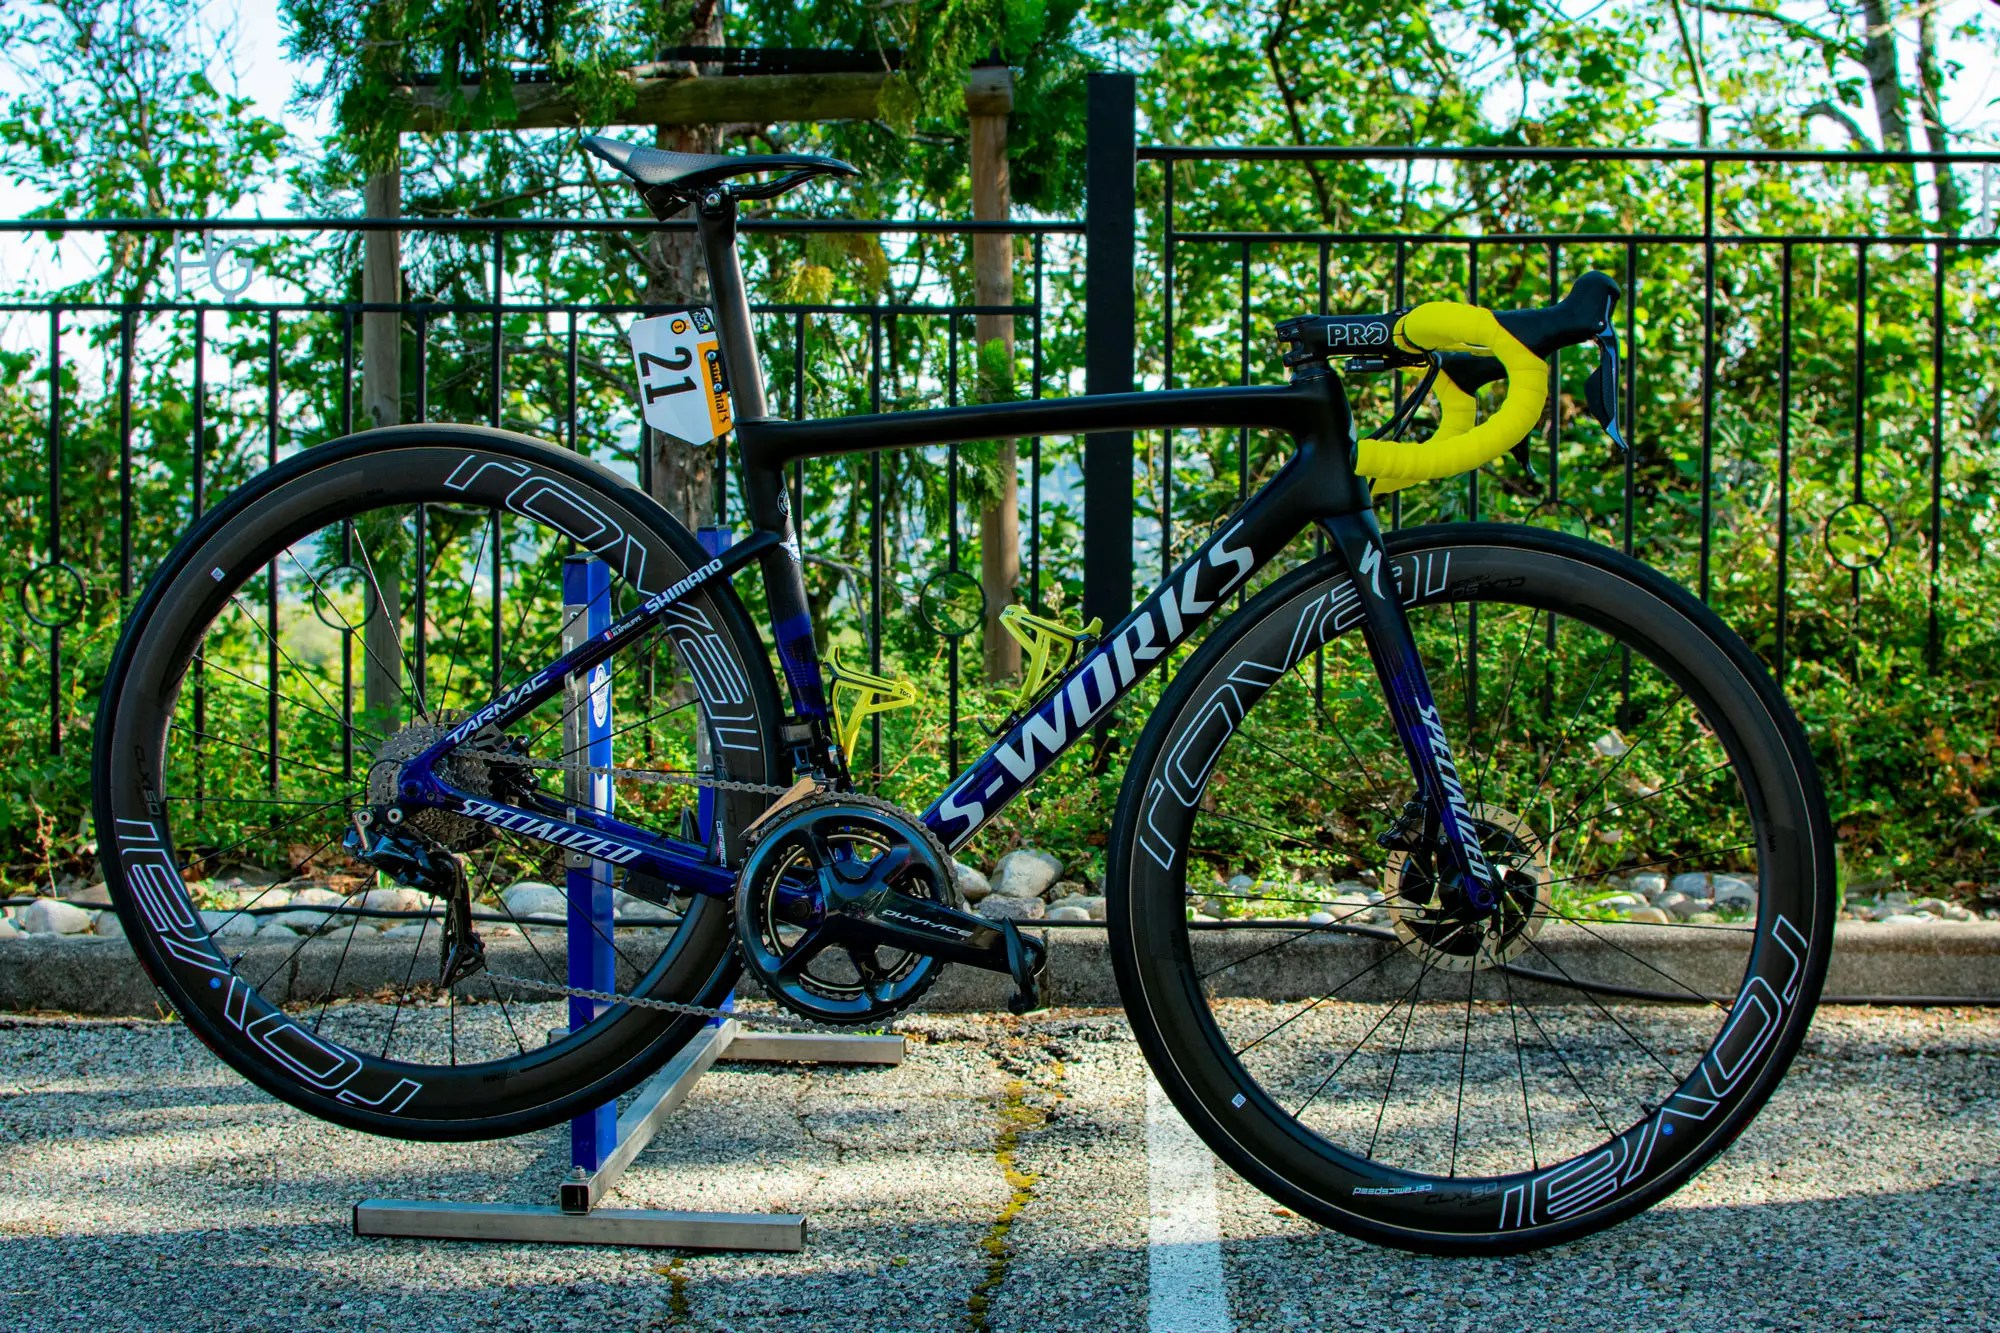 Tour de France Alaphilippe bike Specialized Tarmac leader yellow